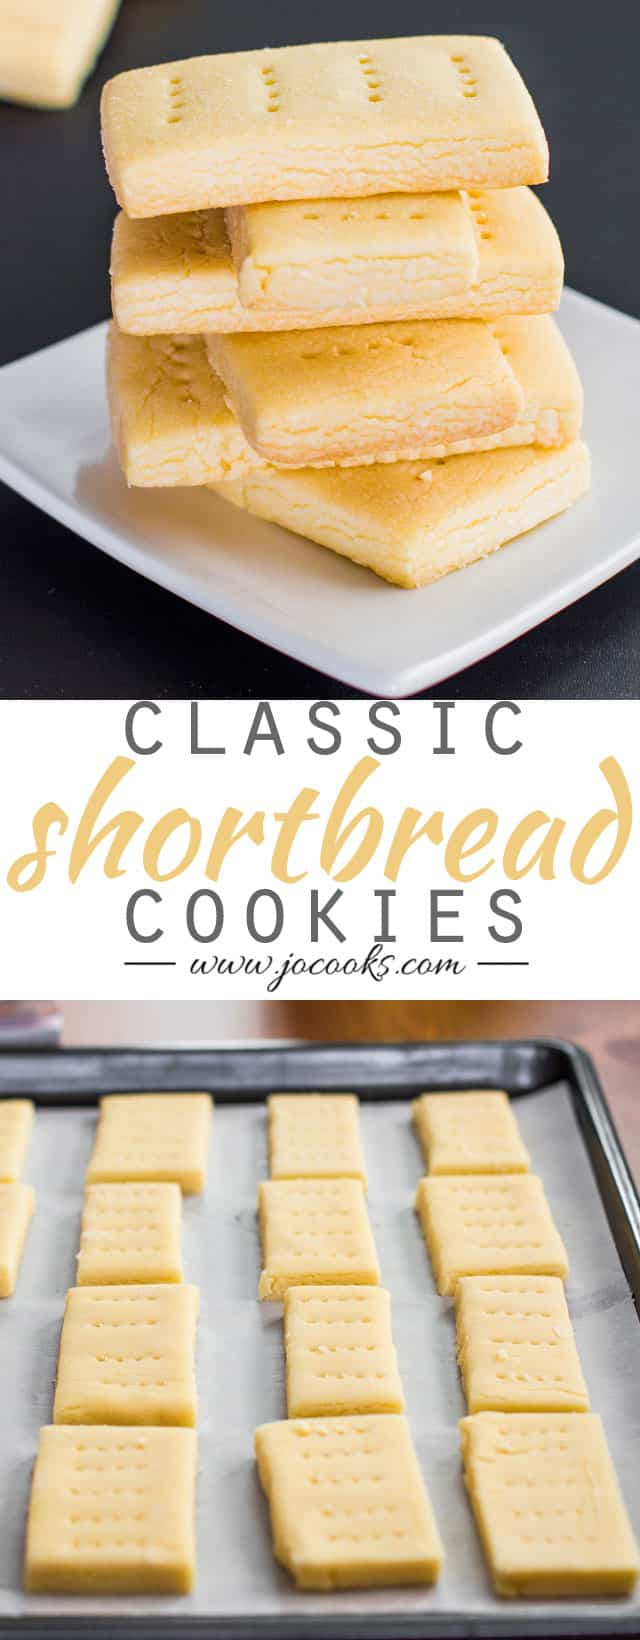 classic-shortbread-cookies-collage